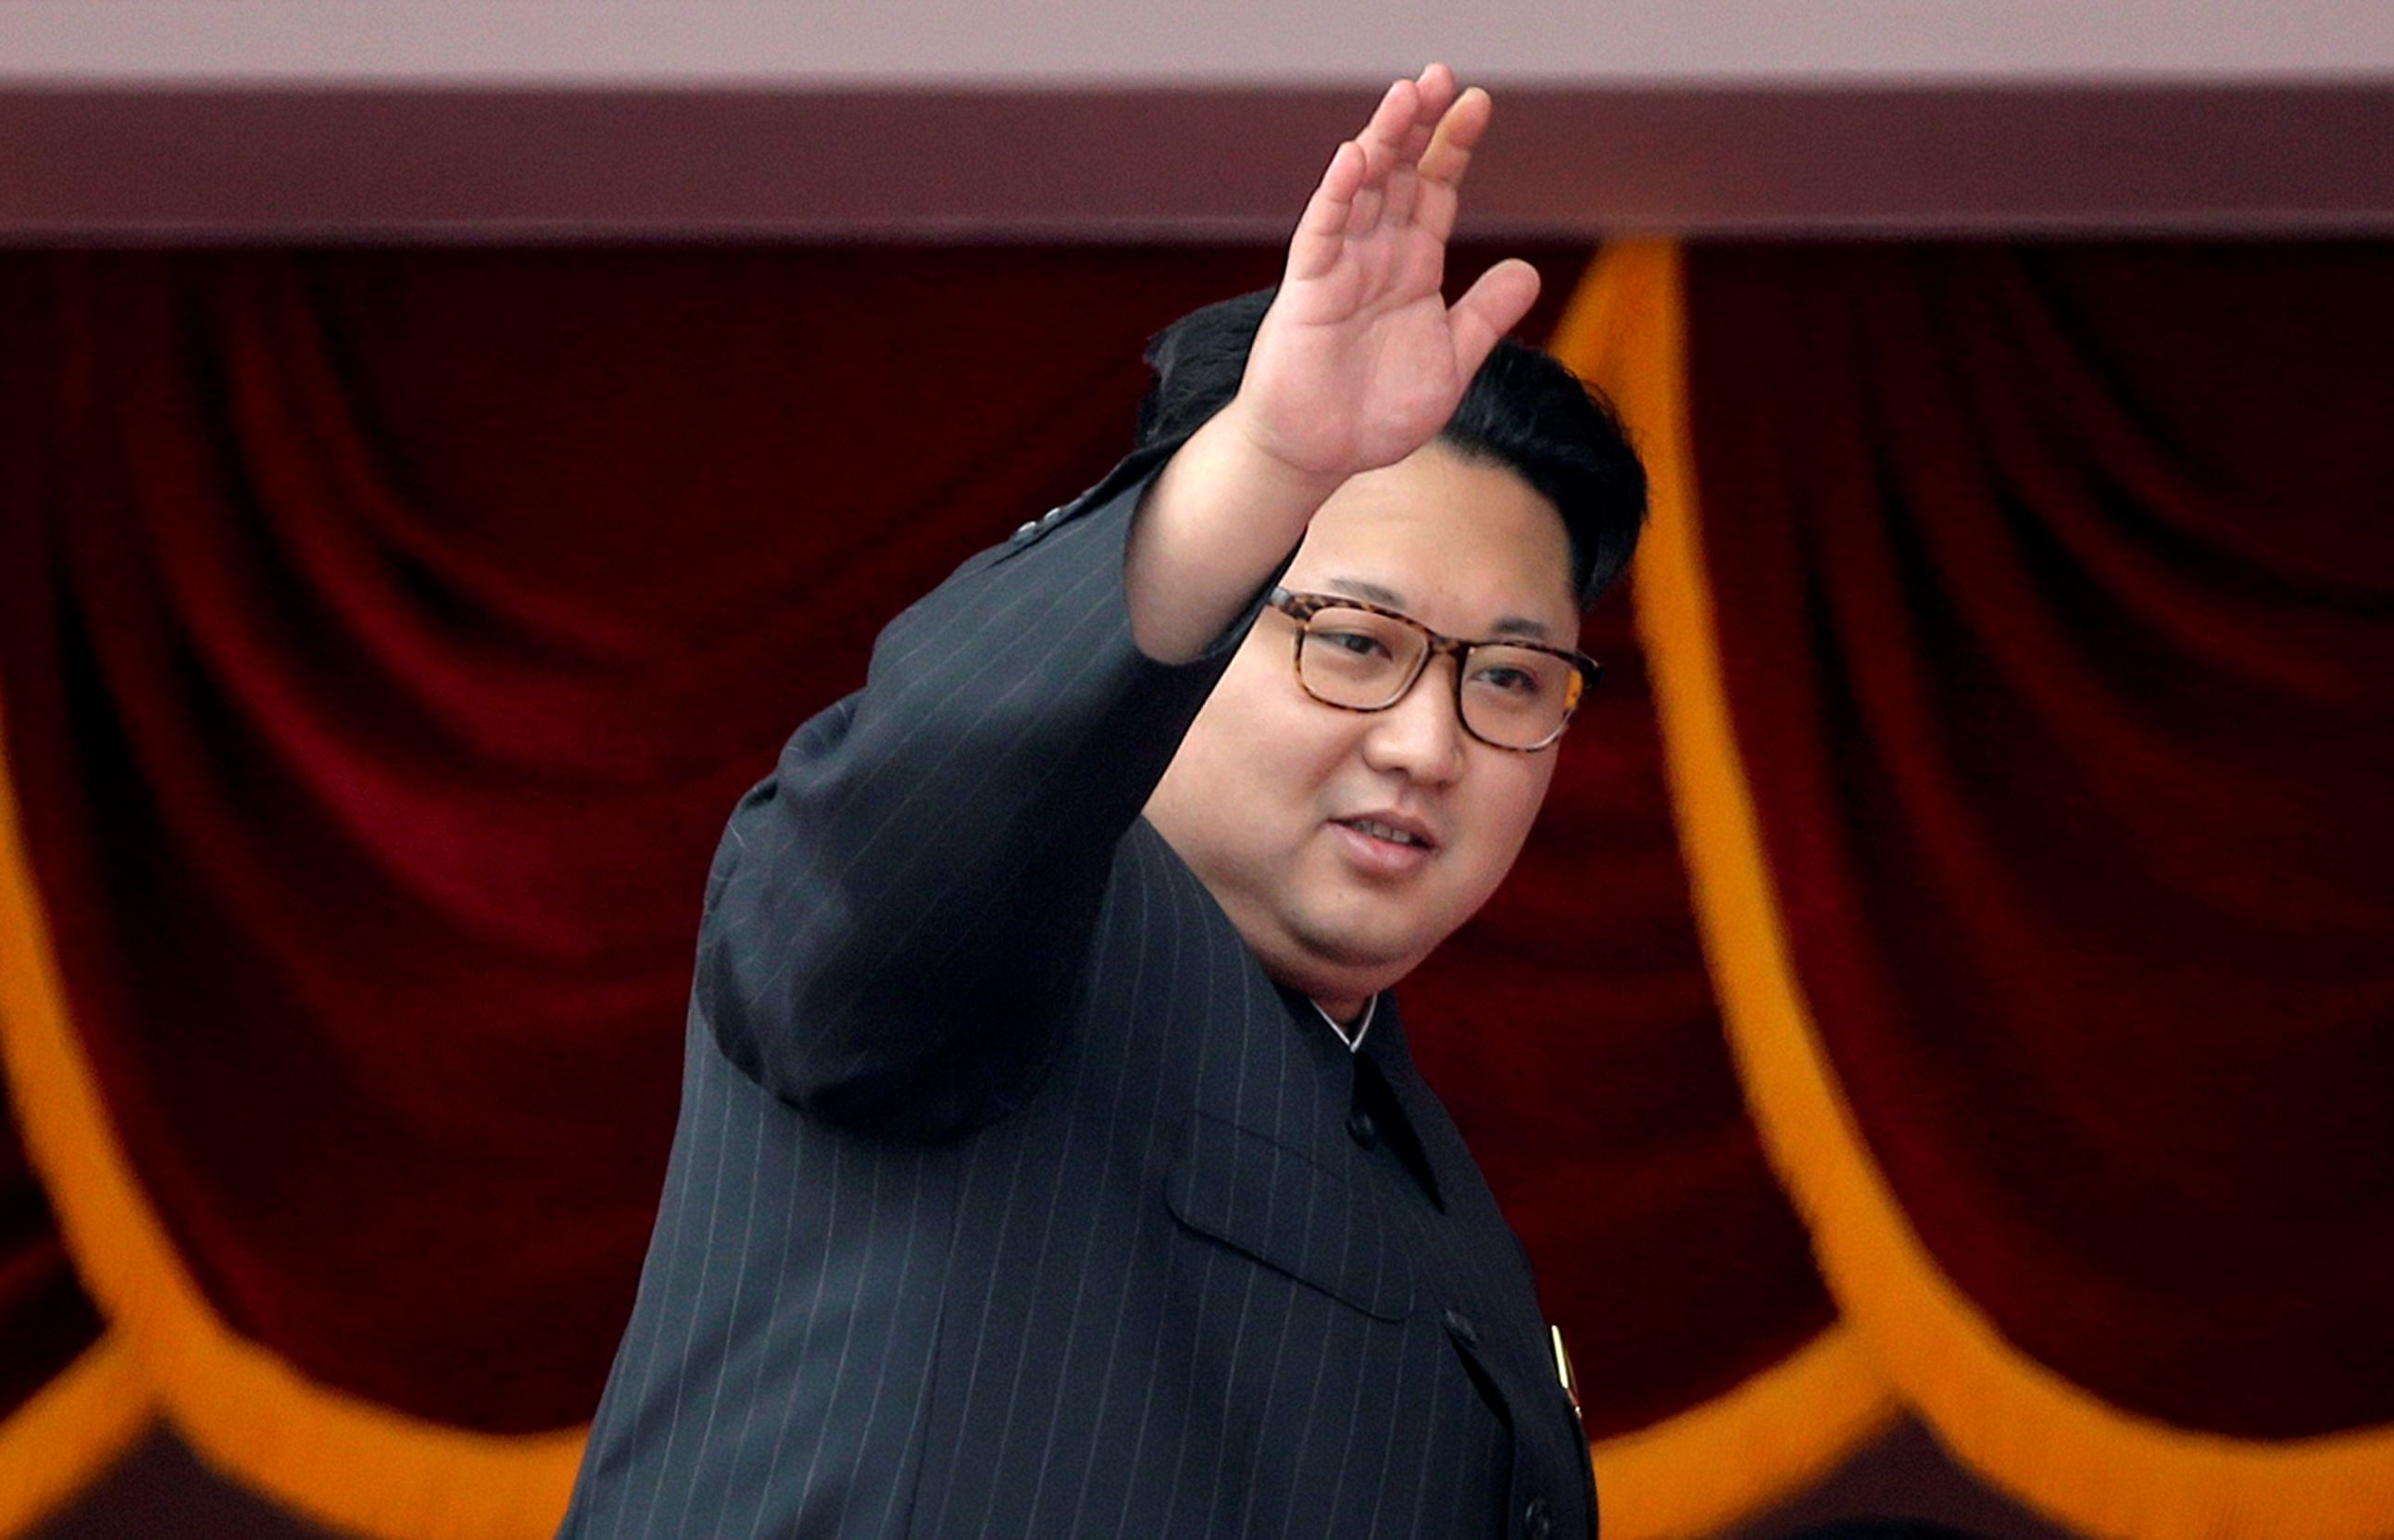 FILE - In this May 10, 2016 file photo, North Korean leader Kim Jong Un waves at parade participants at the Kim Il Sung Square in Pyongyang, North Korea. South Korea's military says North Korea has fired a ballistic missile on Wednesday, Aug. 3, 2016 into the sea.